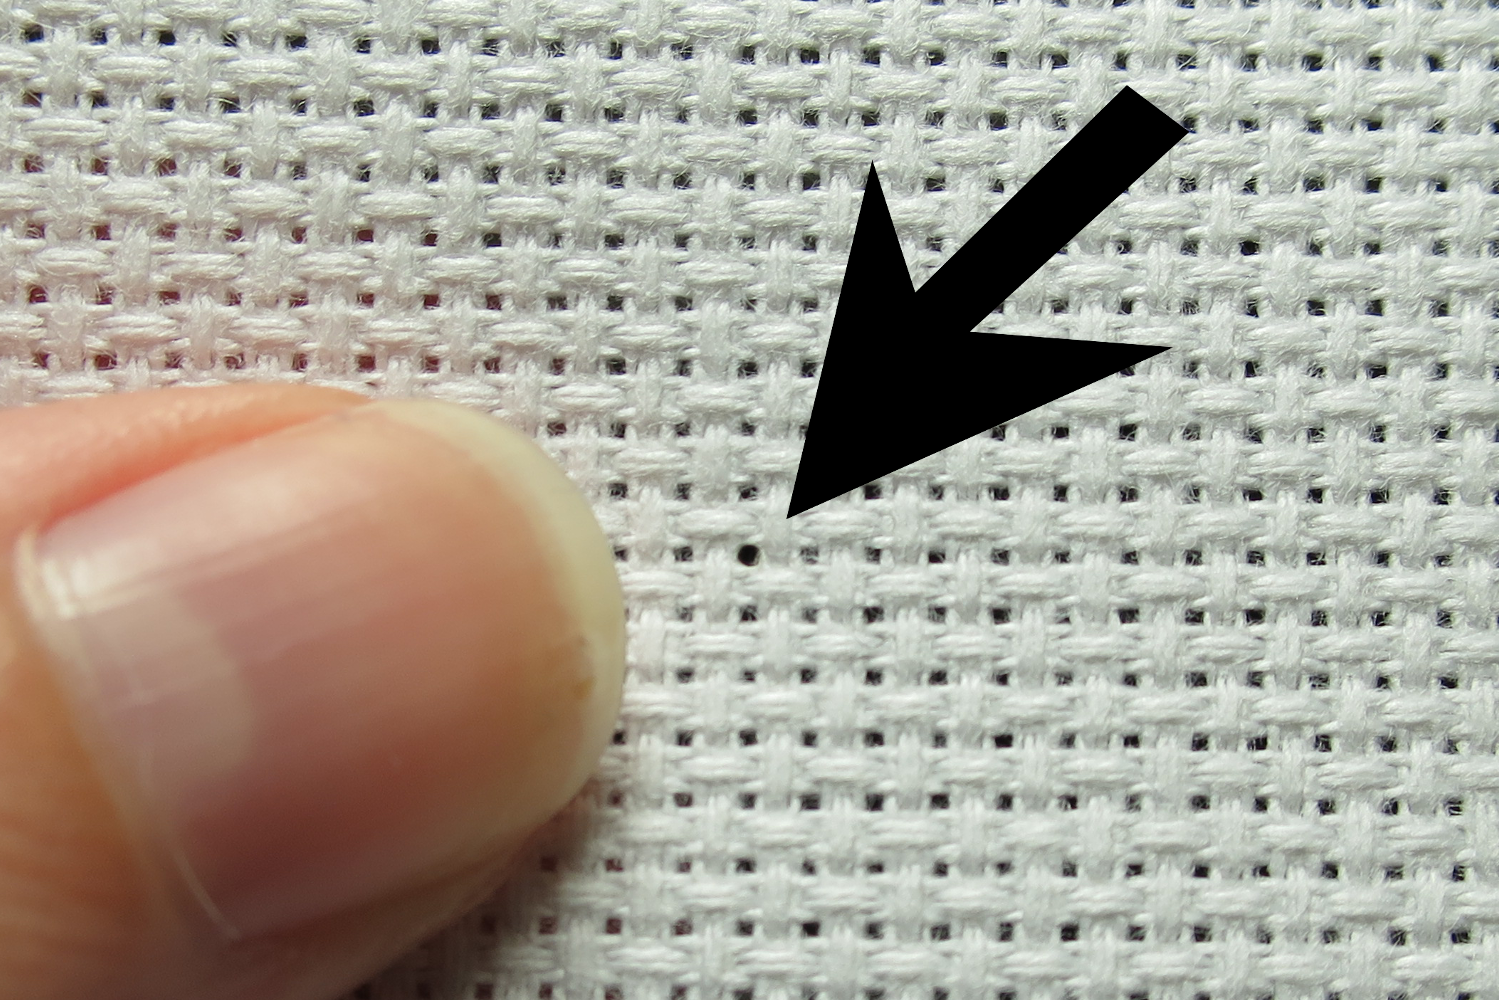 how to make a knot in thread